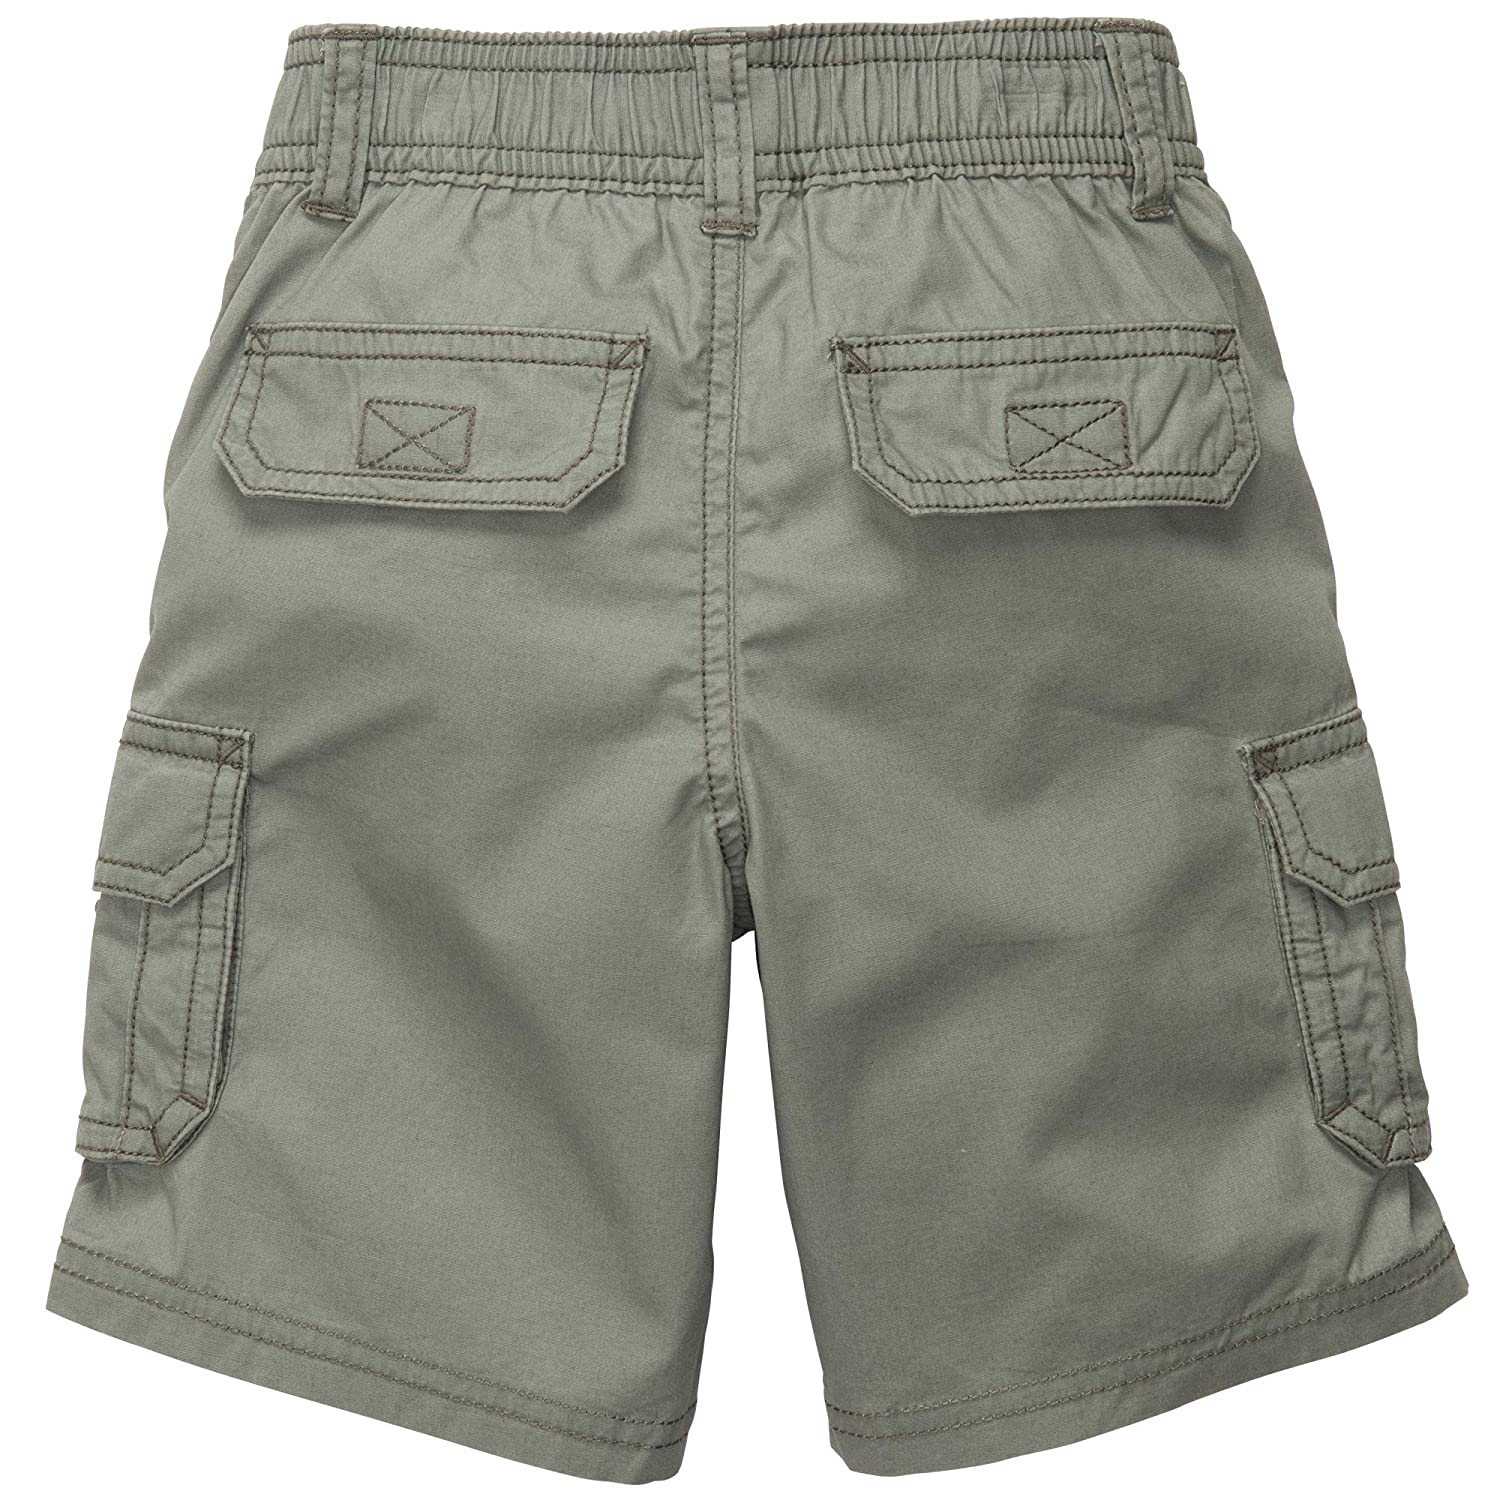 Carters Little Boys Sea Explorer Pull-on Cargo Shorts Grey